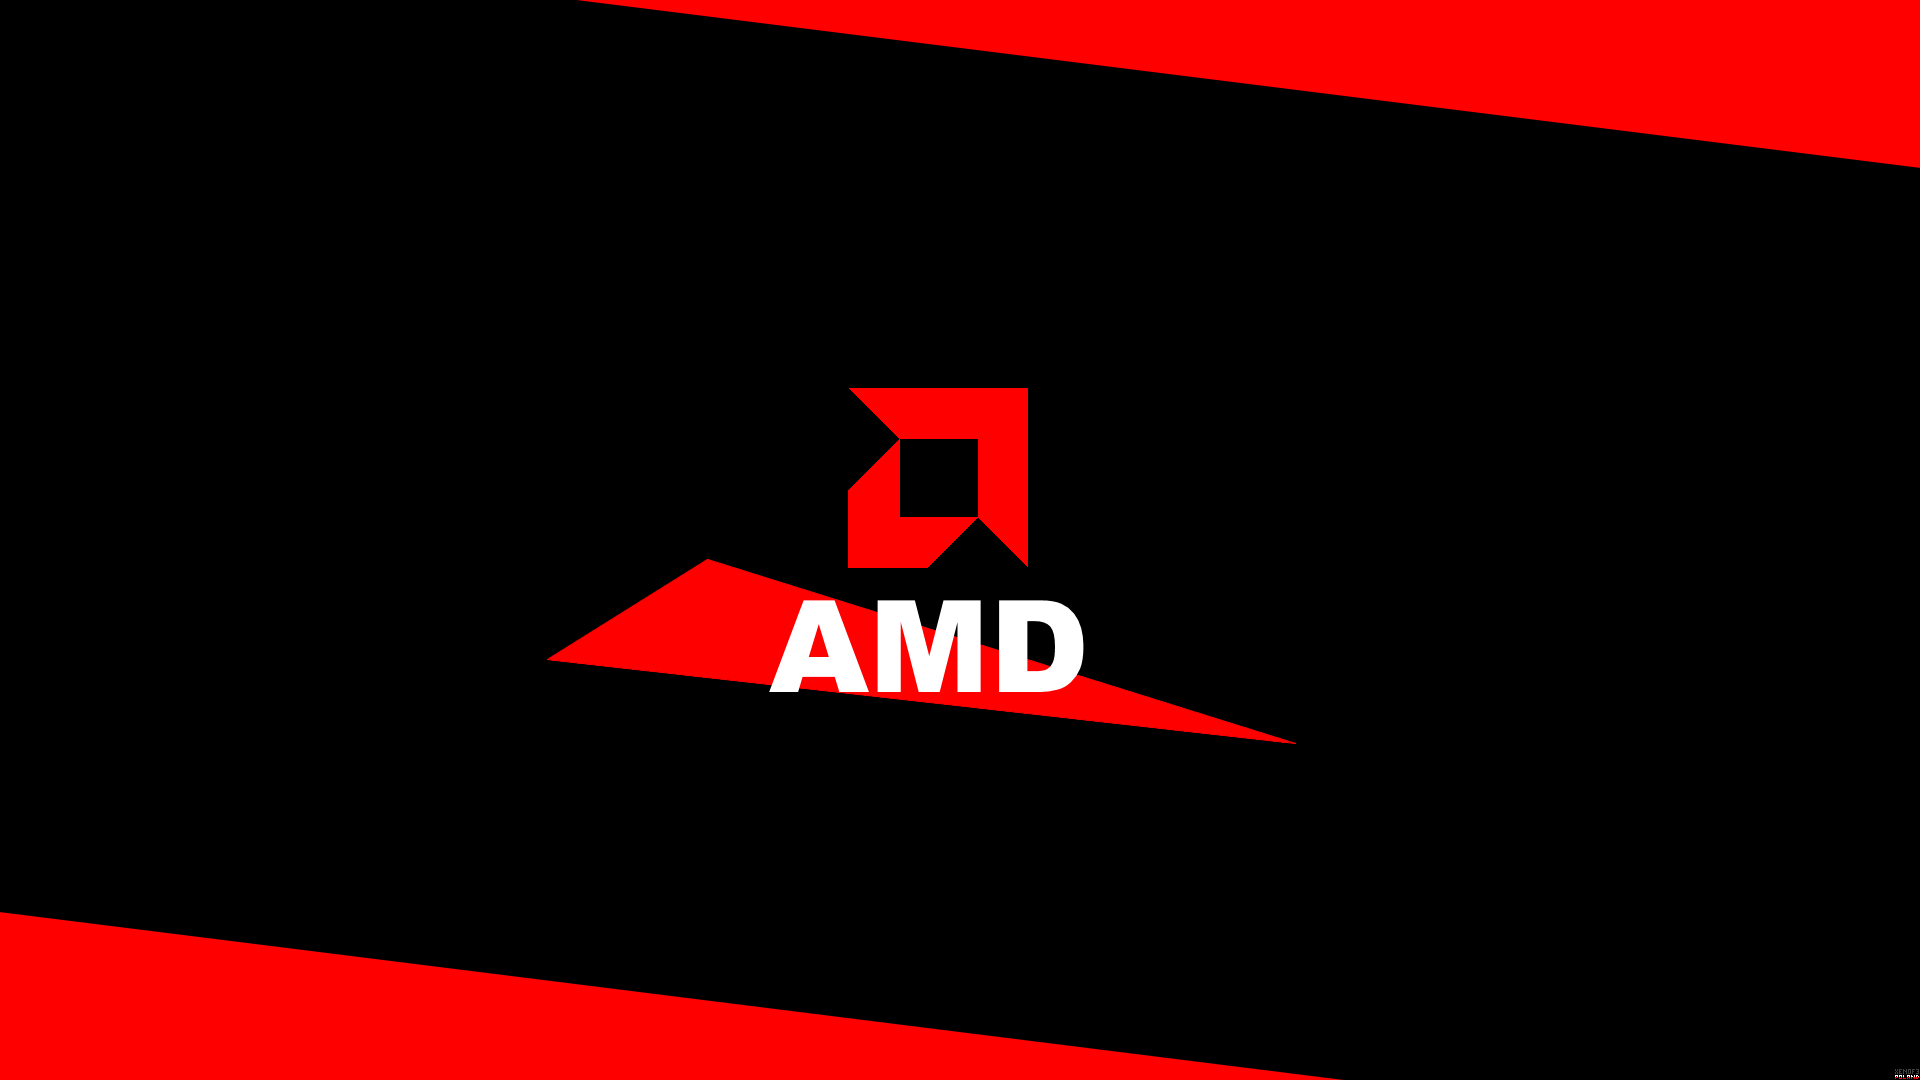 AMD Radeon RX 500 Series Specs Revealed   RX 580 to Feature Polaris 20 XTX   Polaris 21 and Polaris 12 for RX 560 and RX 550